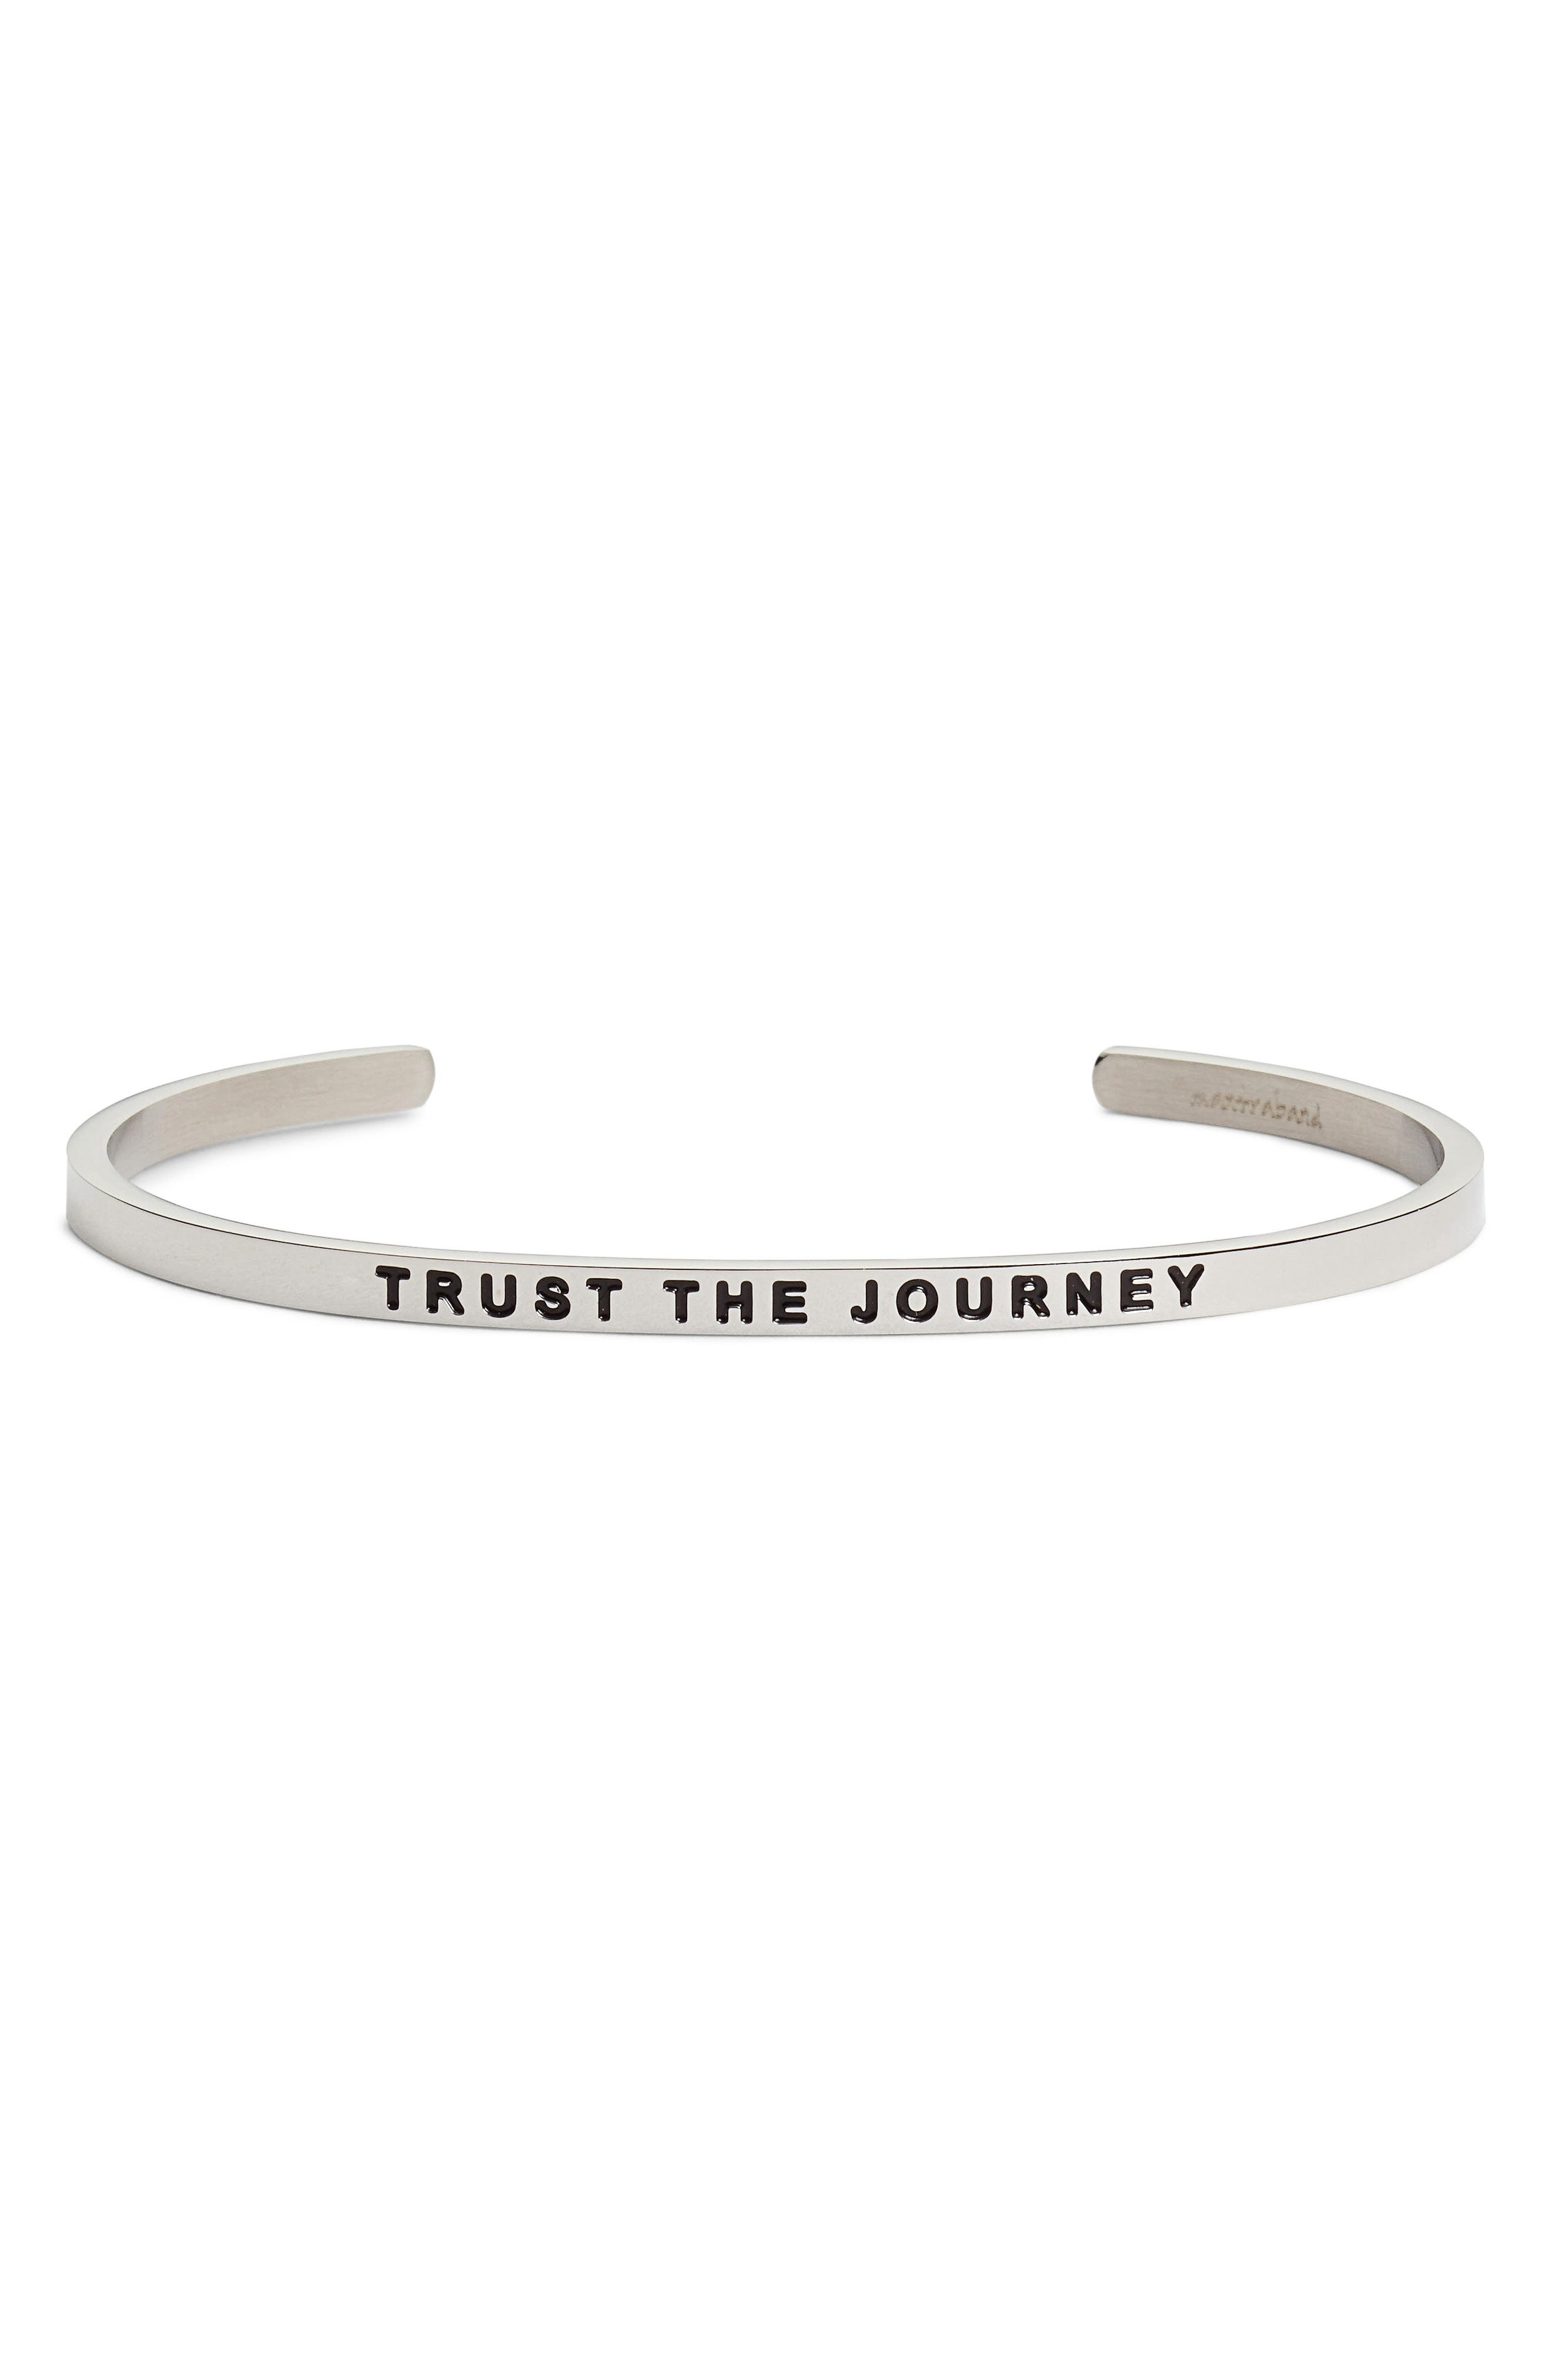 Trust the Journey Cuff,                             Main thumbnail 1, color,